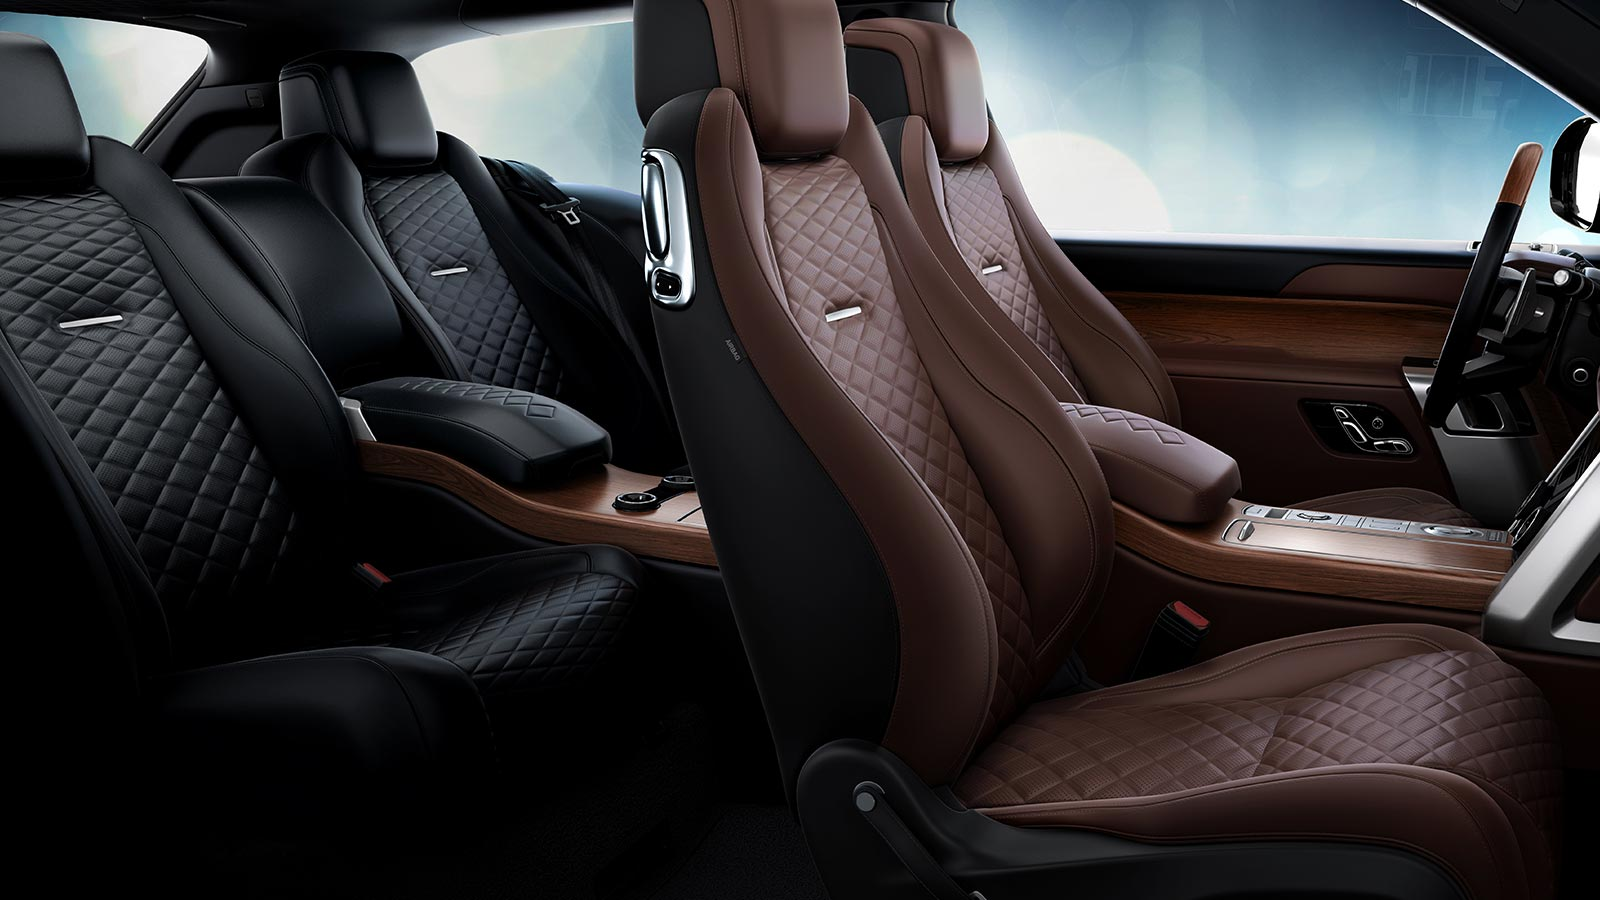 The Range Rover SV Coupé interior in Ebony and Brogue